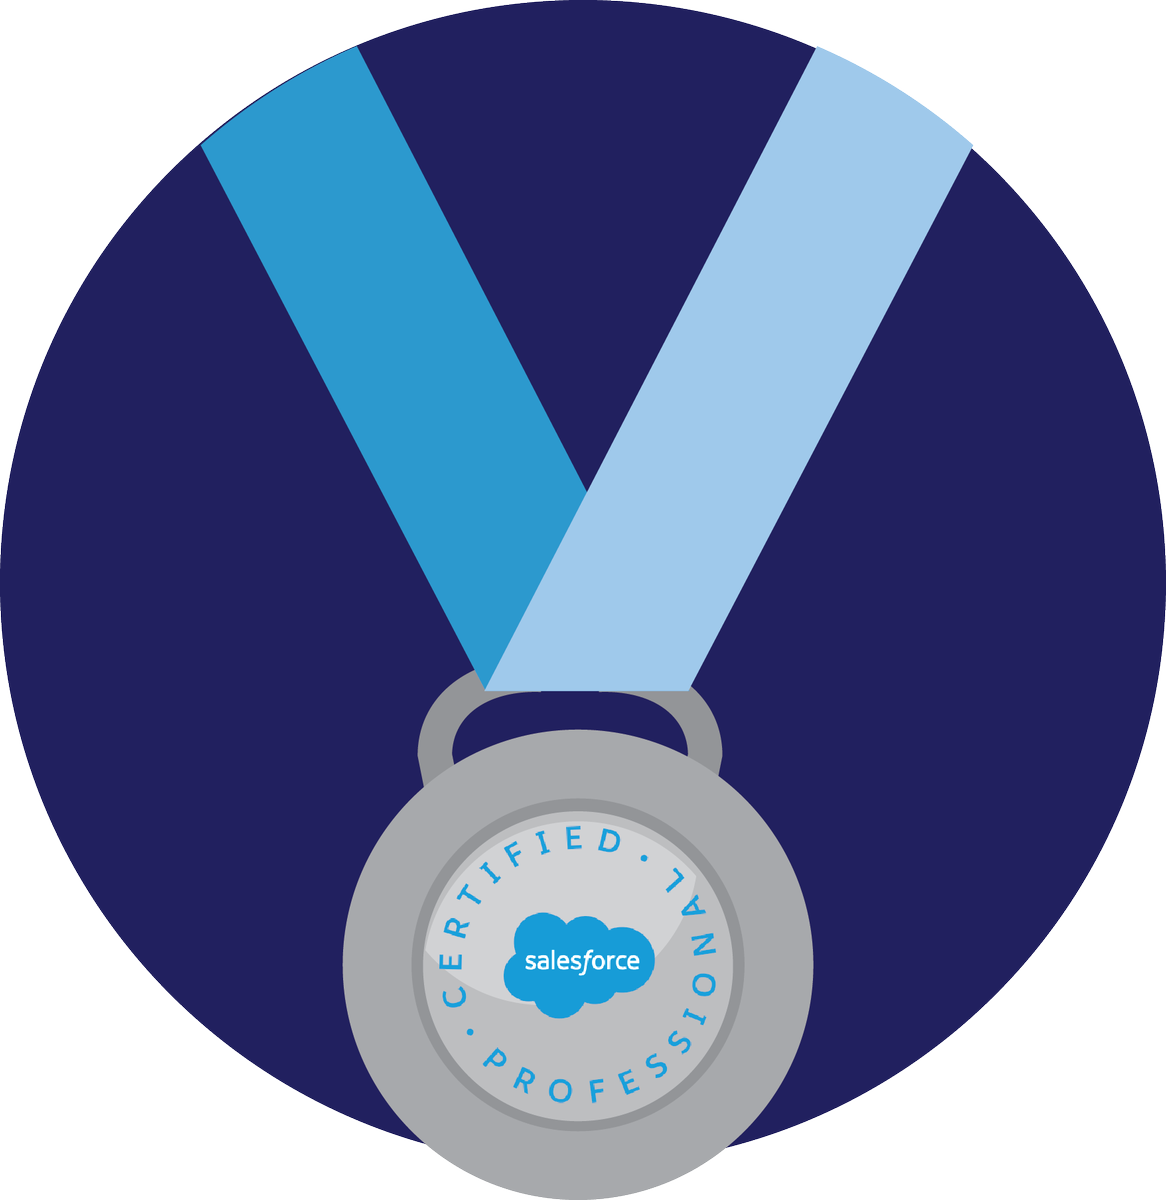 Daniel Peter On Twitter The First 1000 People To Get A Salesforce